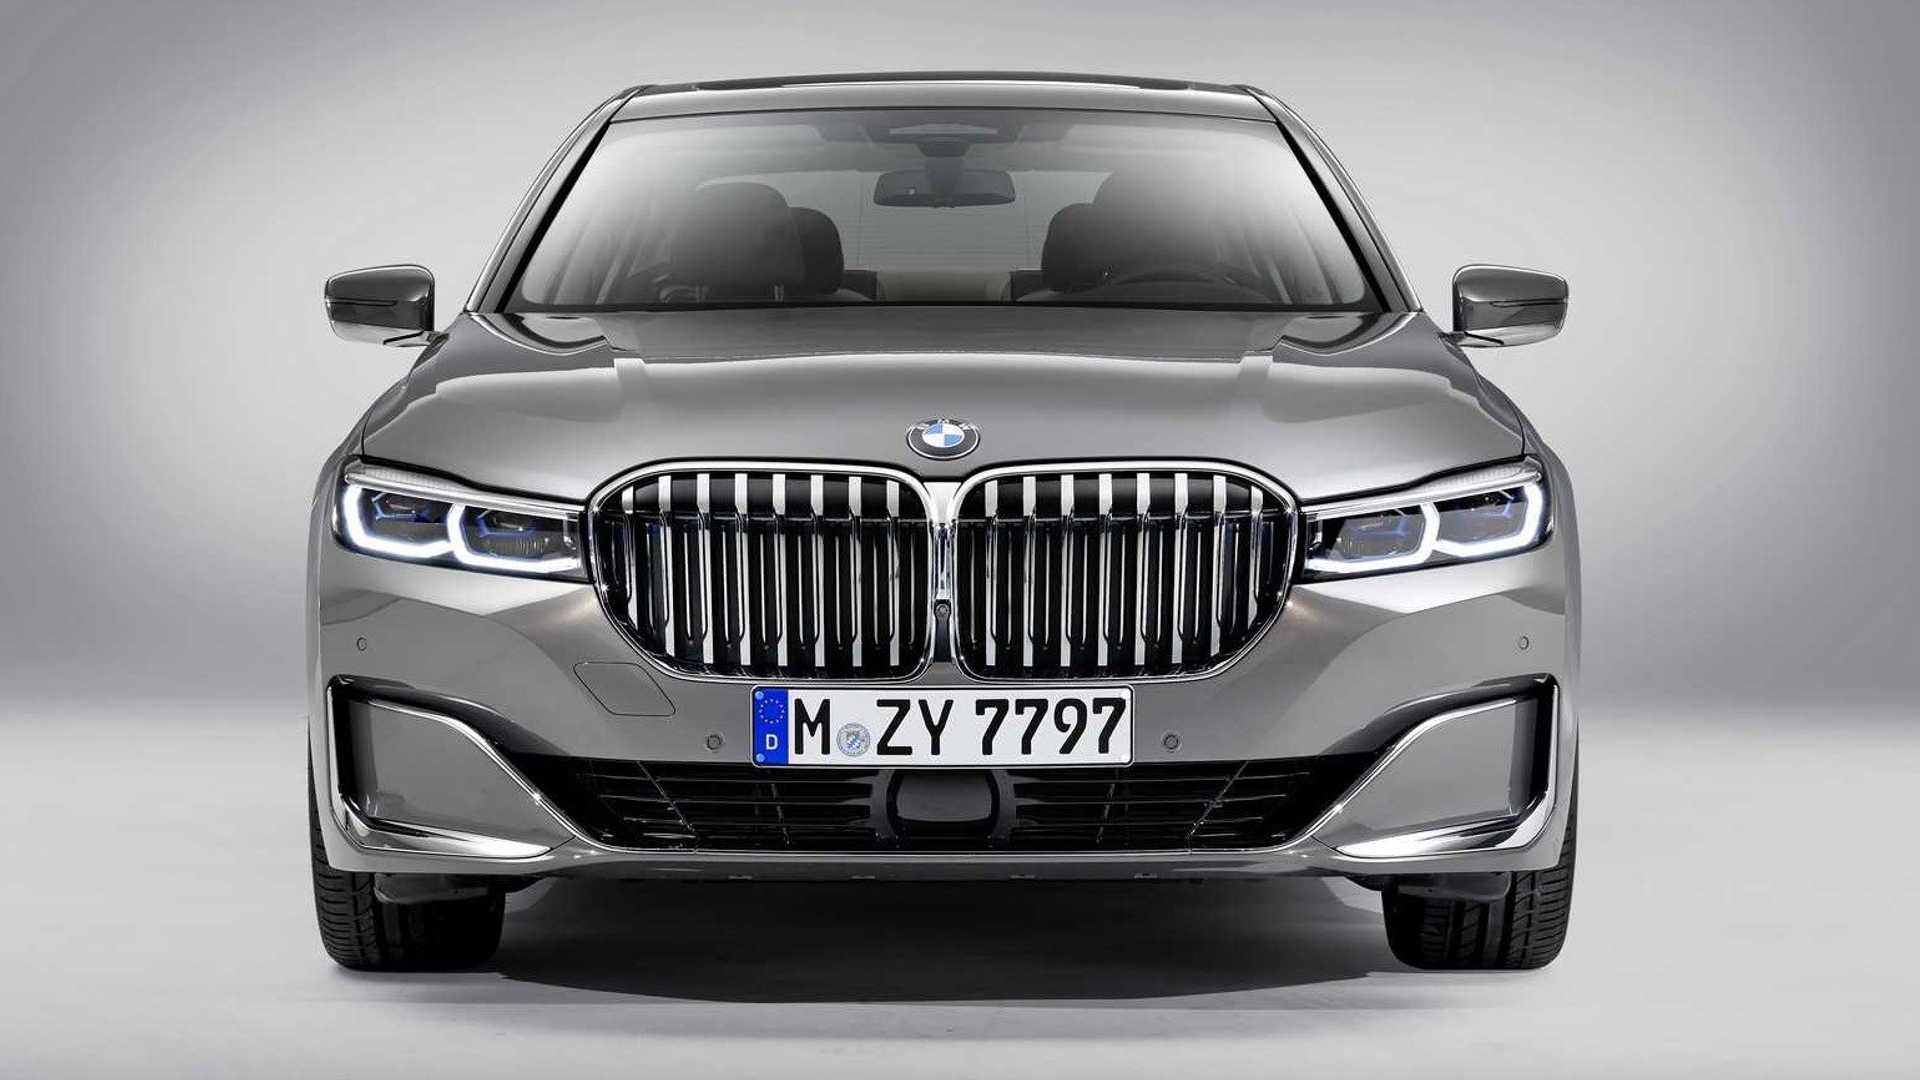 12 New 2020 Bmw 760Li Speed Test by 2020 Bmw 760Li